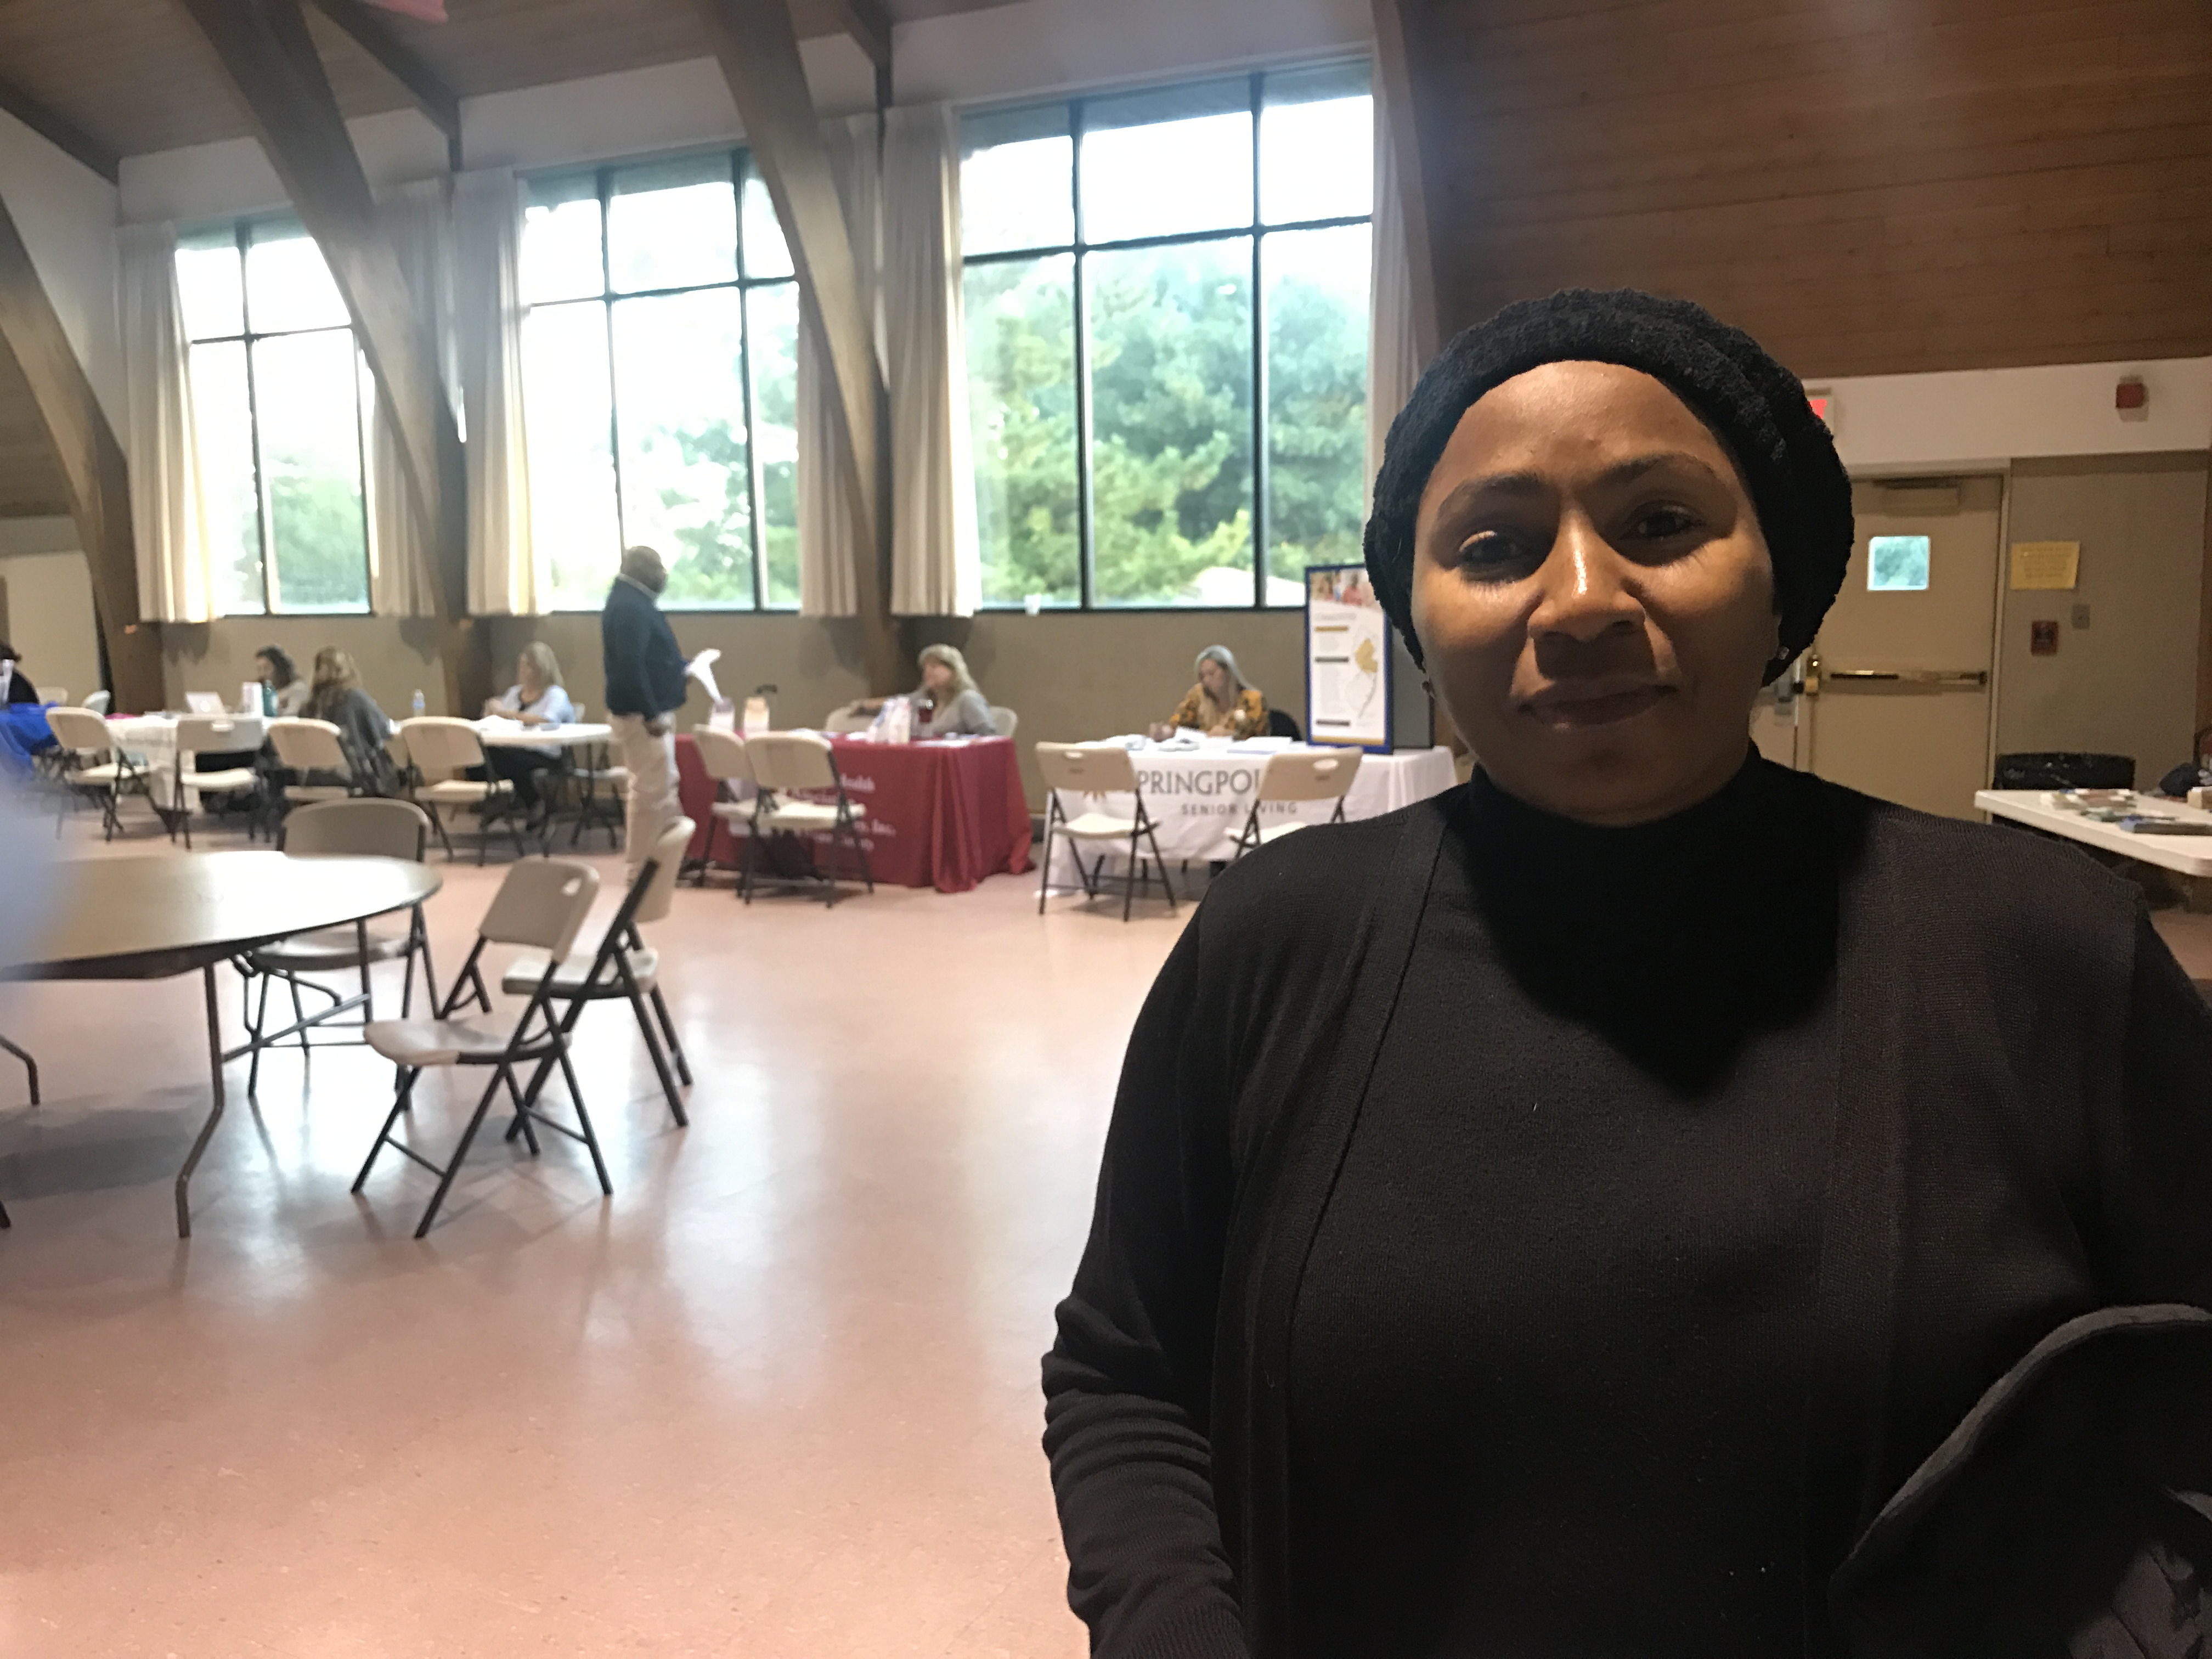 Michelle Griffith, 51, of Toms River, attends a state-sponsored housing fair for Sandy victims, nearly five years after the storm itself. She was a renter in Queens, became homeless and lived out of her car for a time.